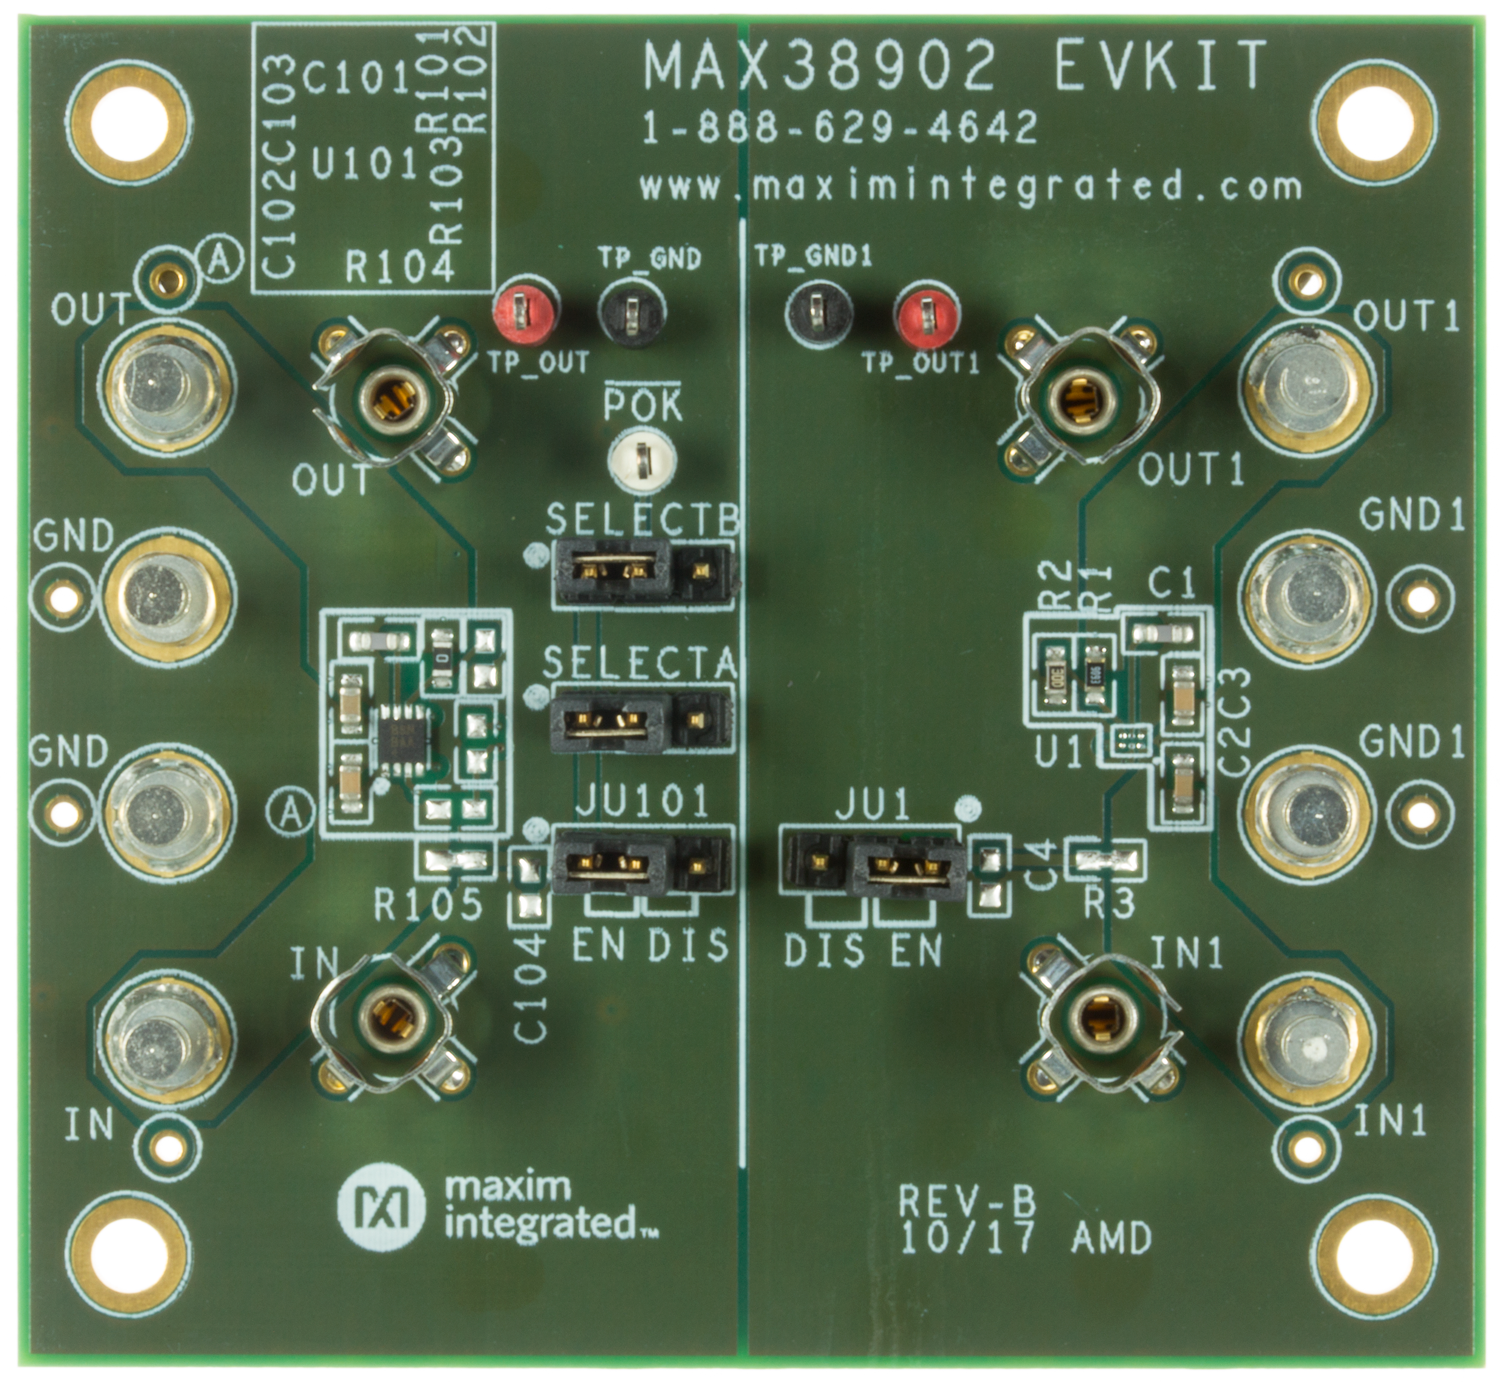 Low Dropout Linear Regulators Ldos Maxim Power Supply Circuit For Noise Audio Max38902evkit